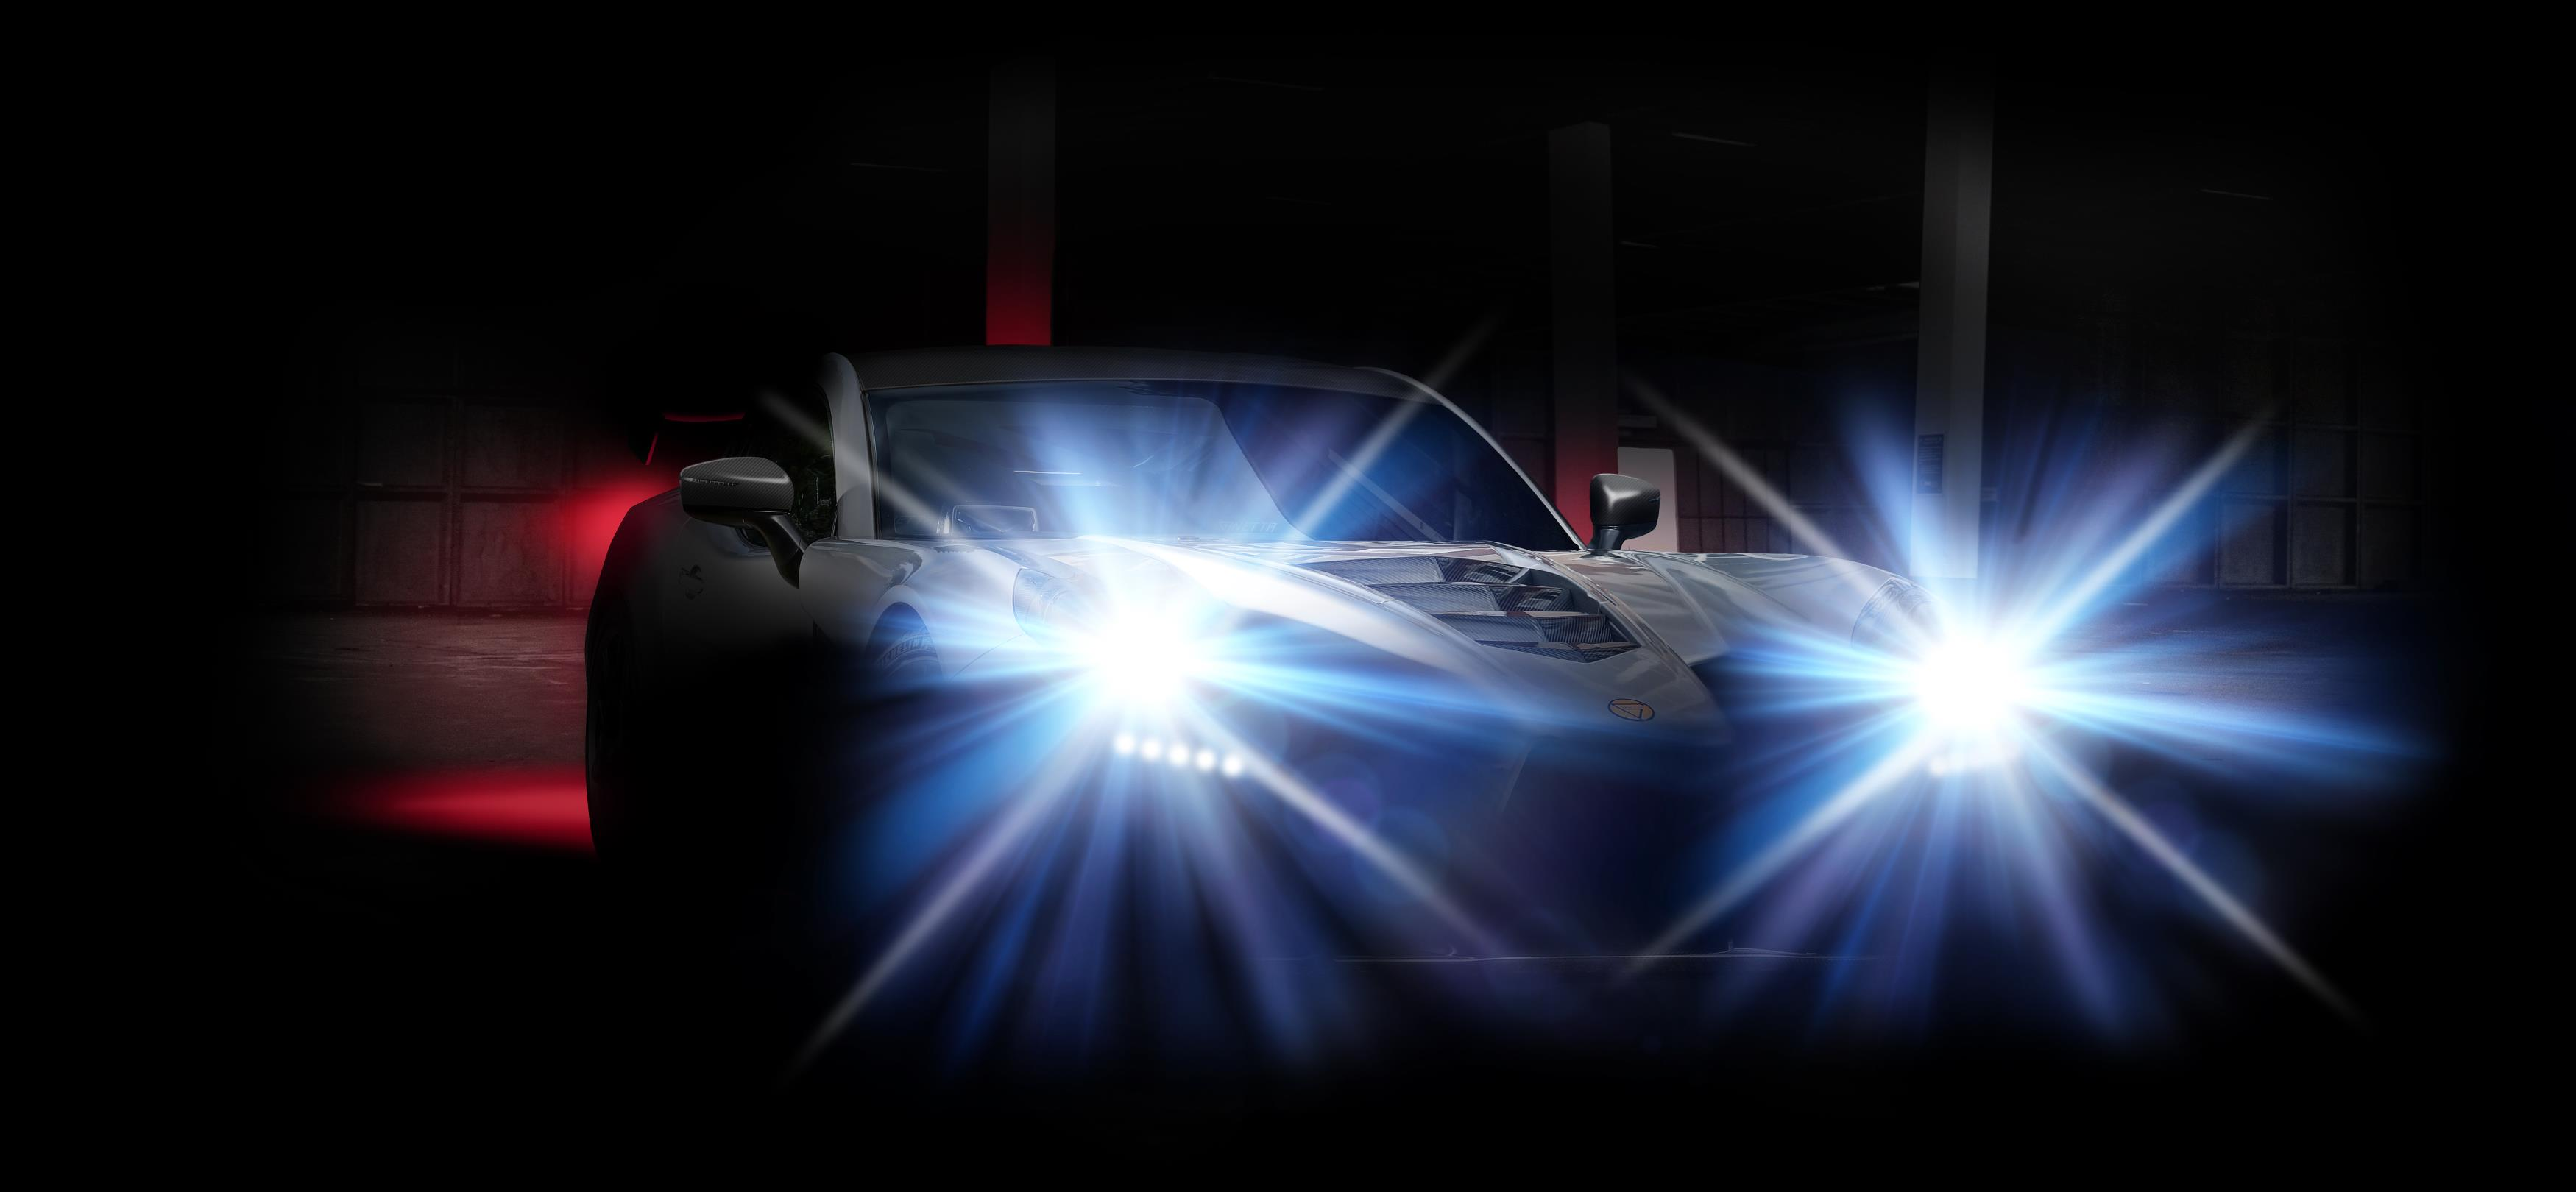 600hp+ Ginetta Supercar to Launch with N/A V8